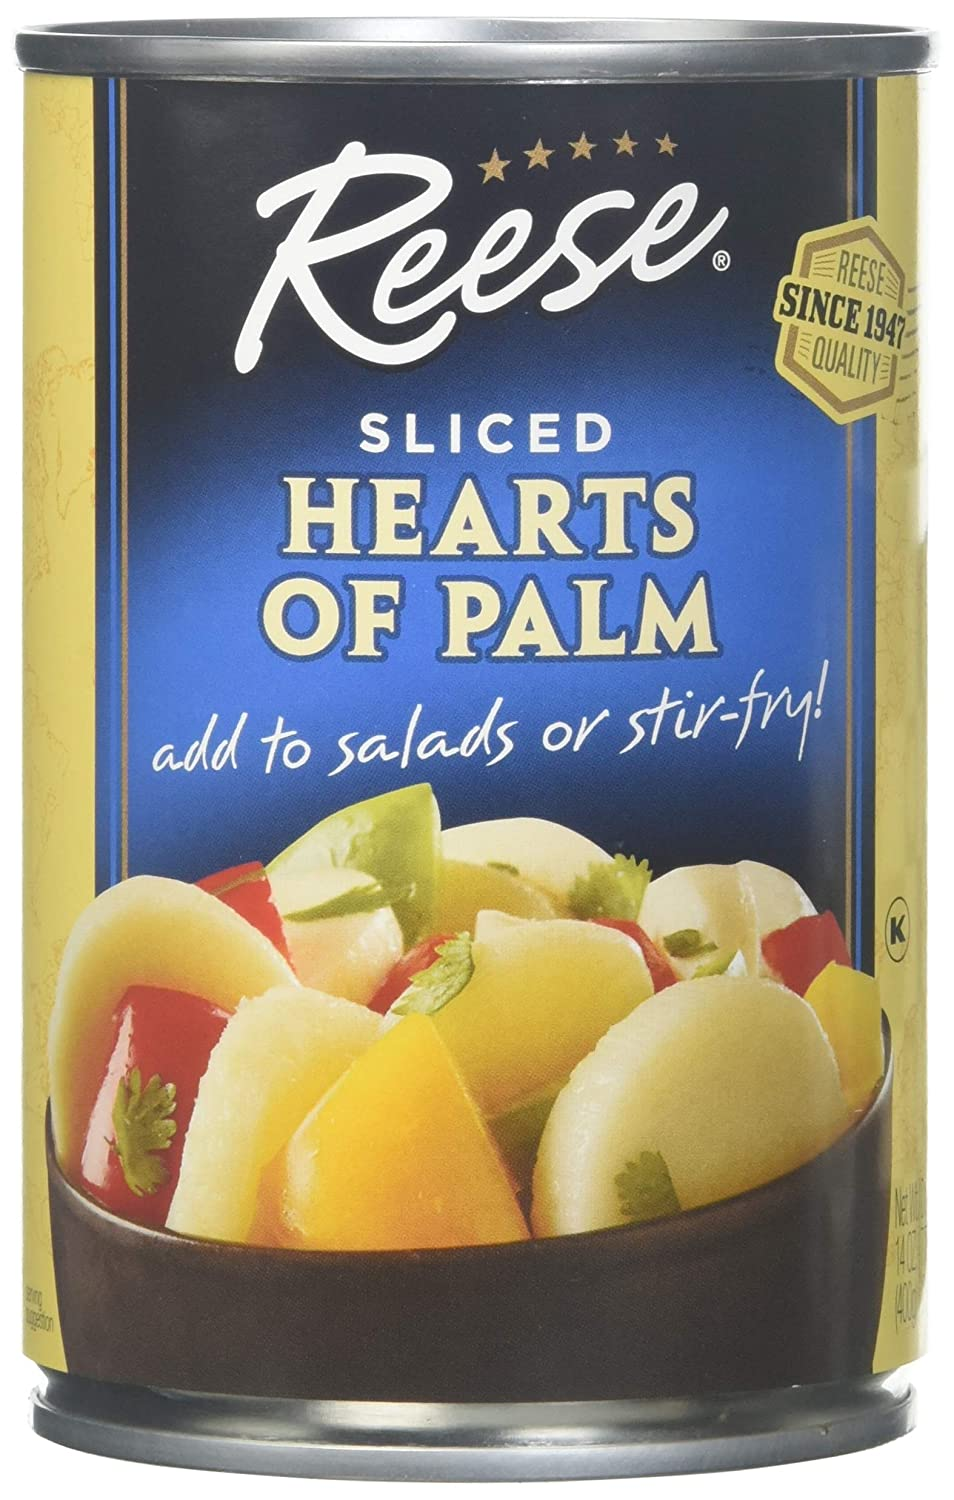 B00VLSWK5I Reese Hearts of Palm Slices, 14-Ounces (Pack of 6) 81kOmPBL62L